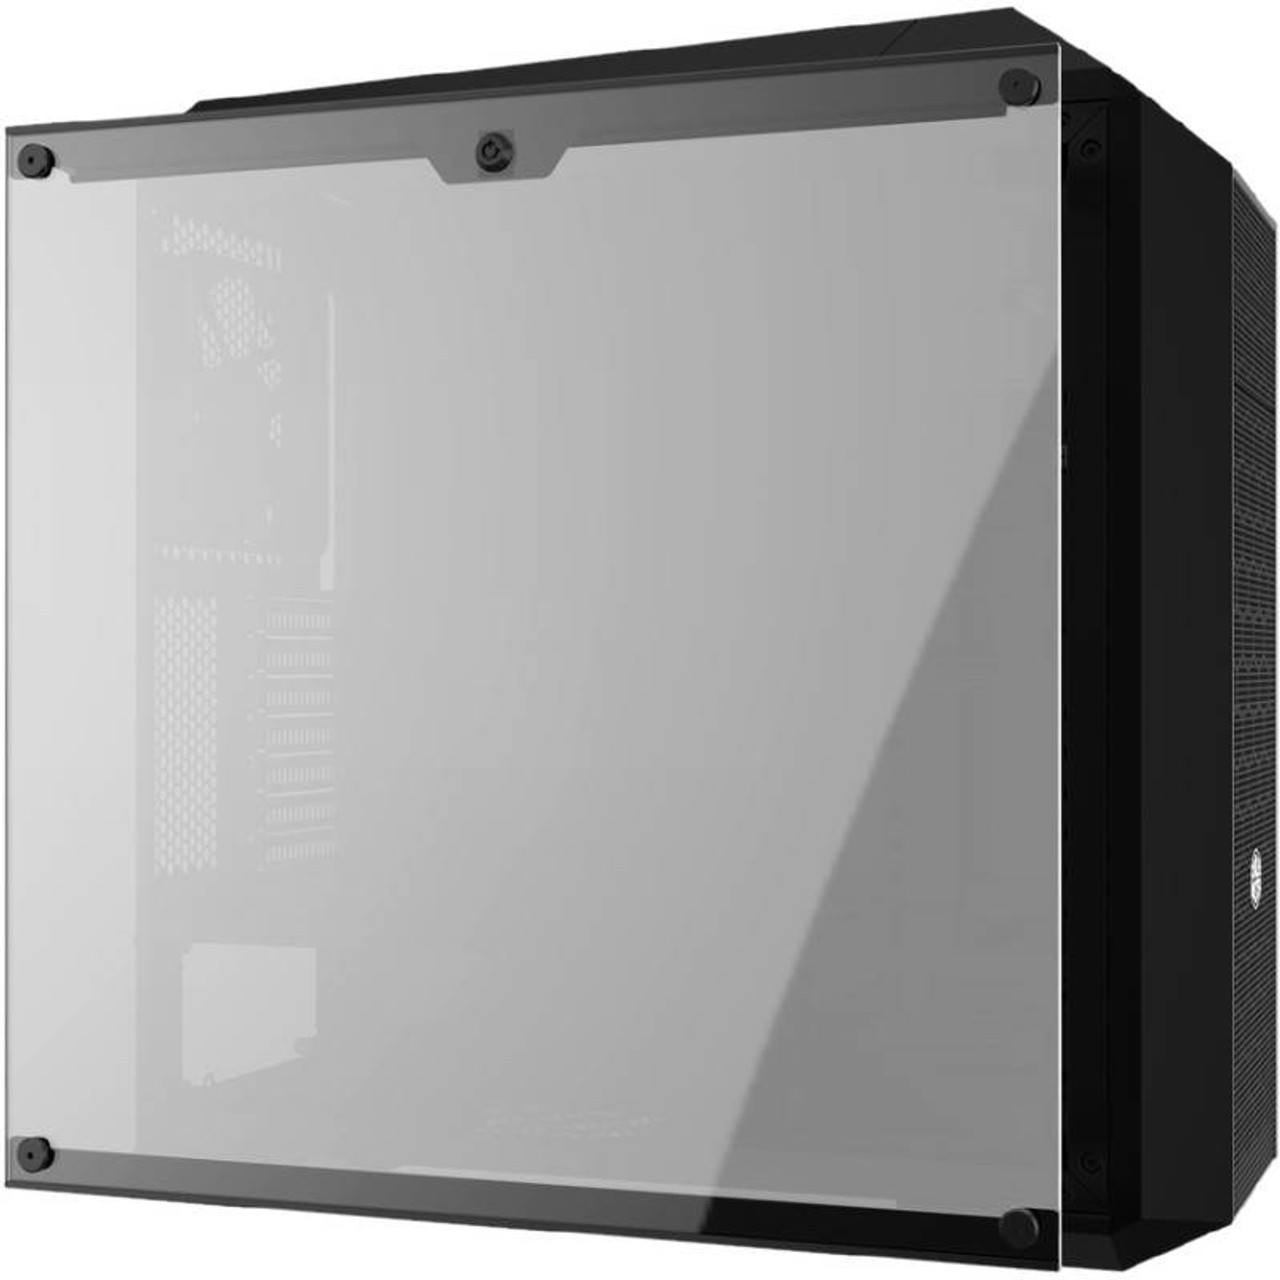 Image for Cooler Master Tempered Glass Side Panel - MCA-0005-KGW00 CX Computer Superstore